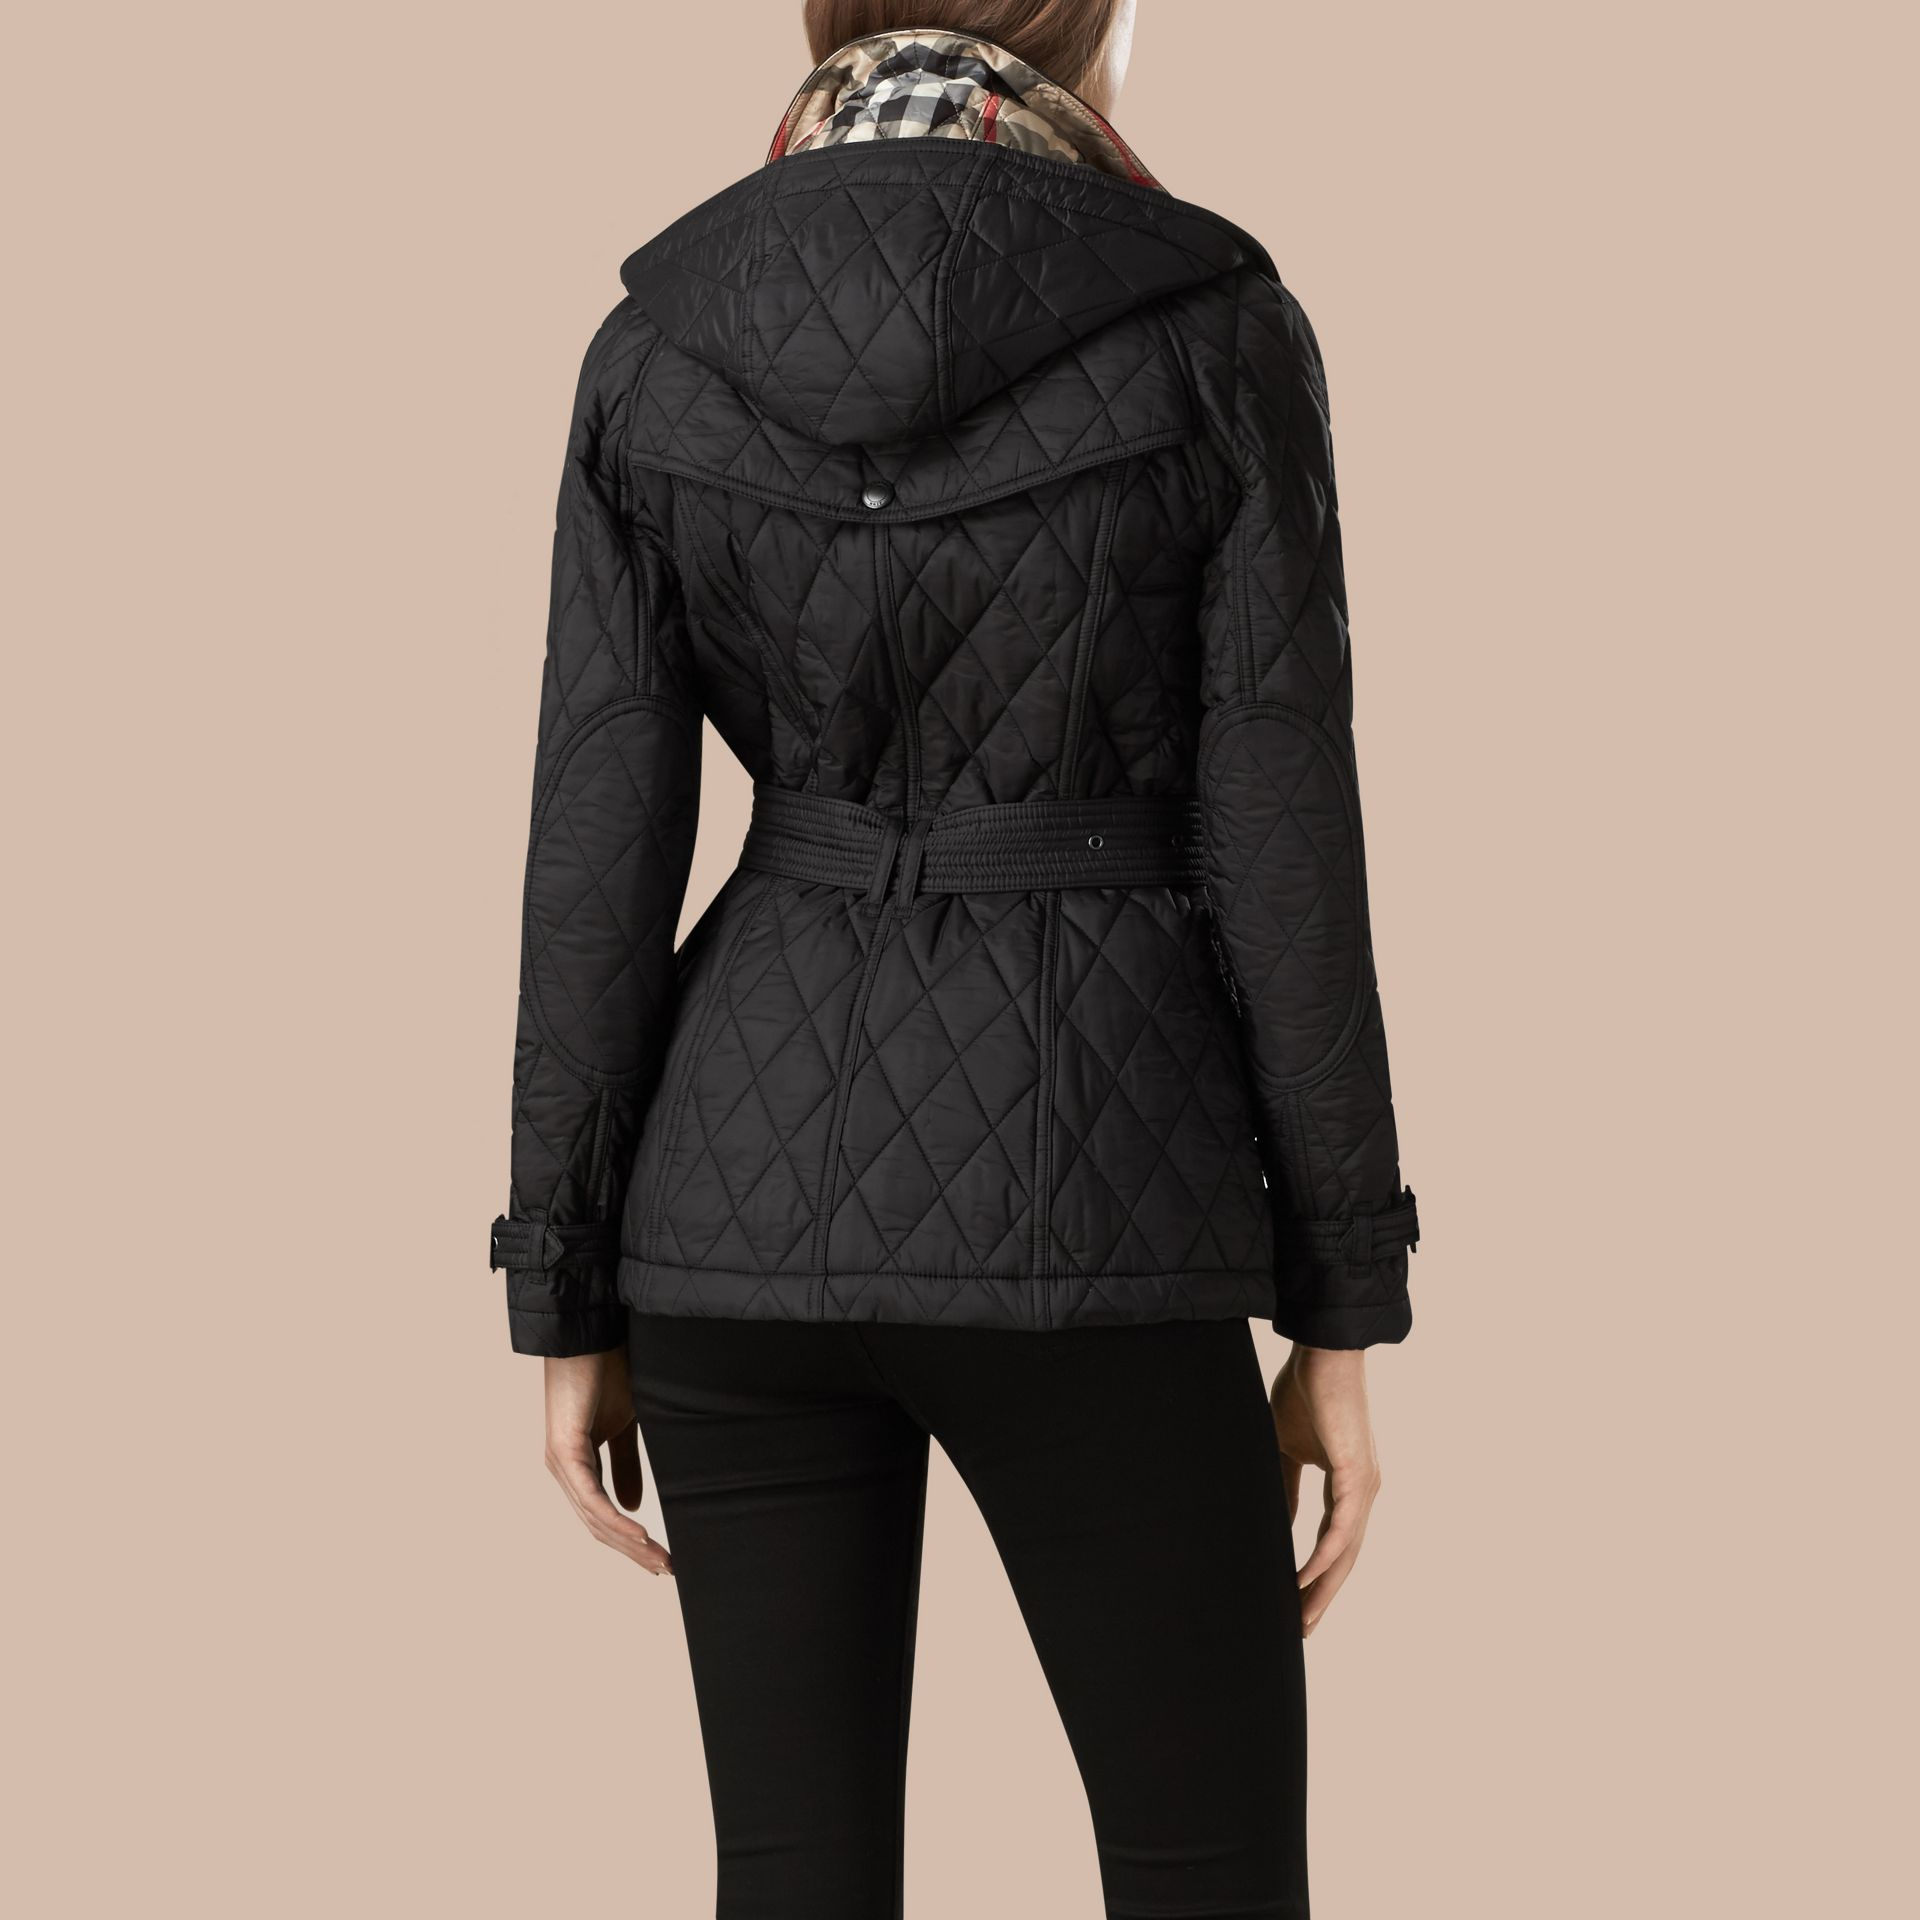 Black Quilted Trench Jacket with Detachable Hood Black - gallery image 3